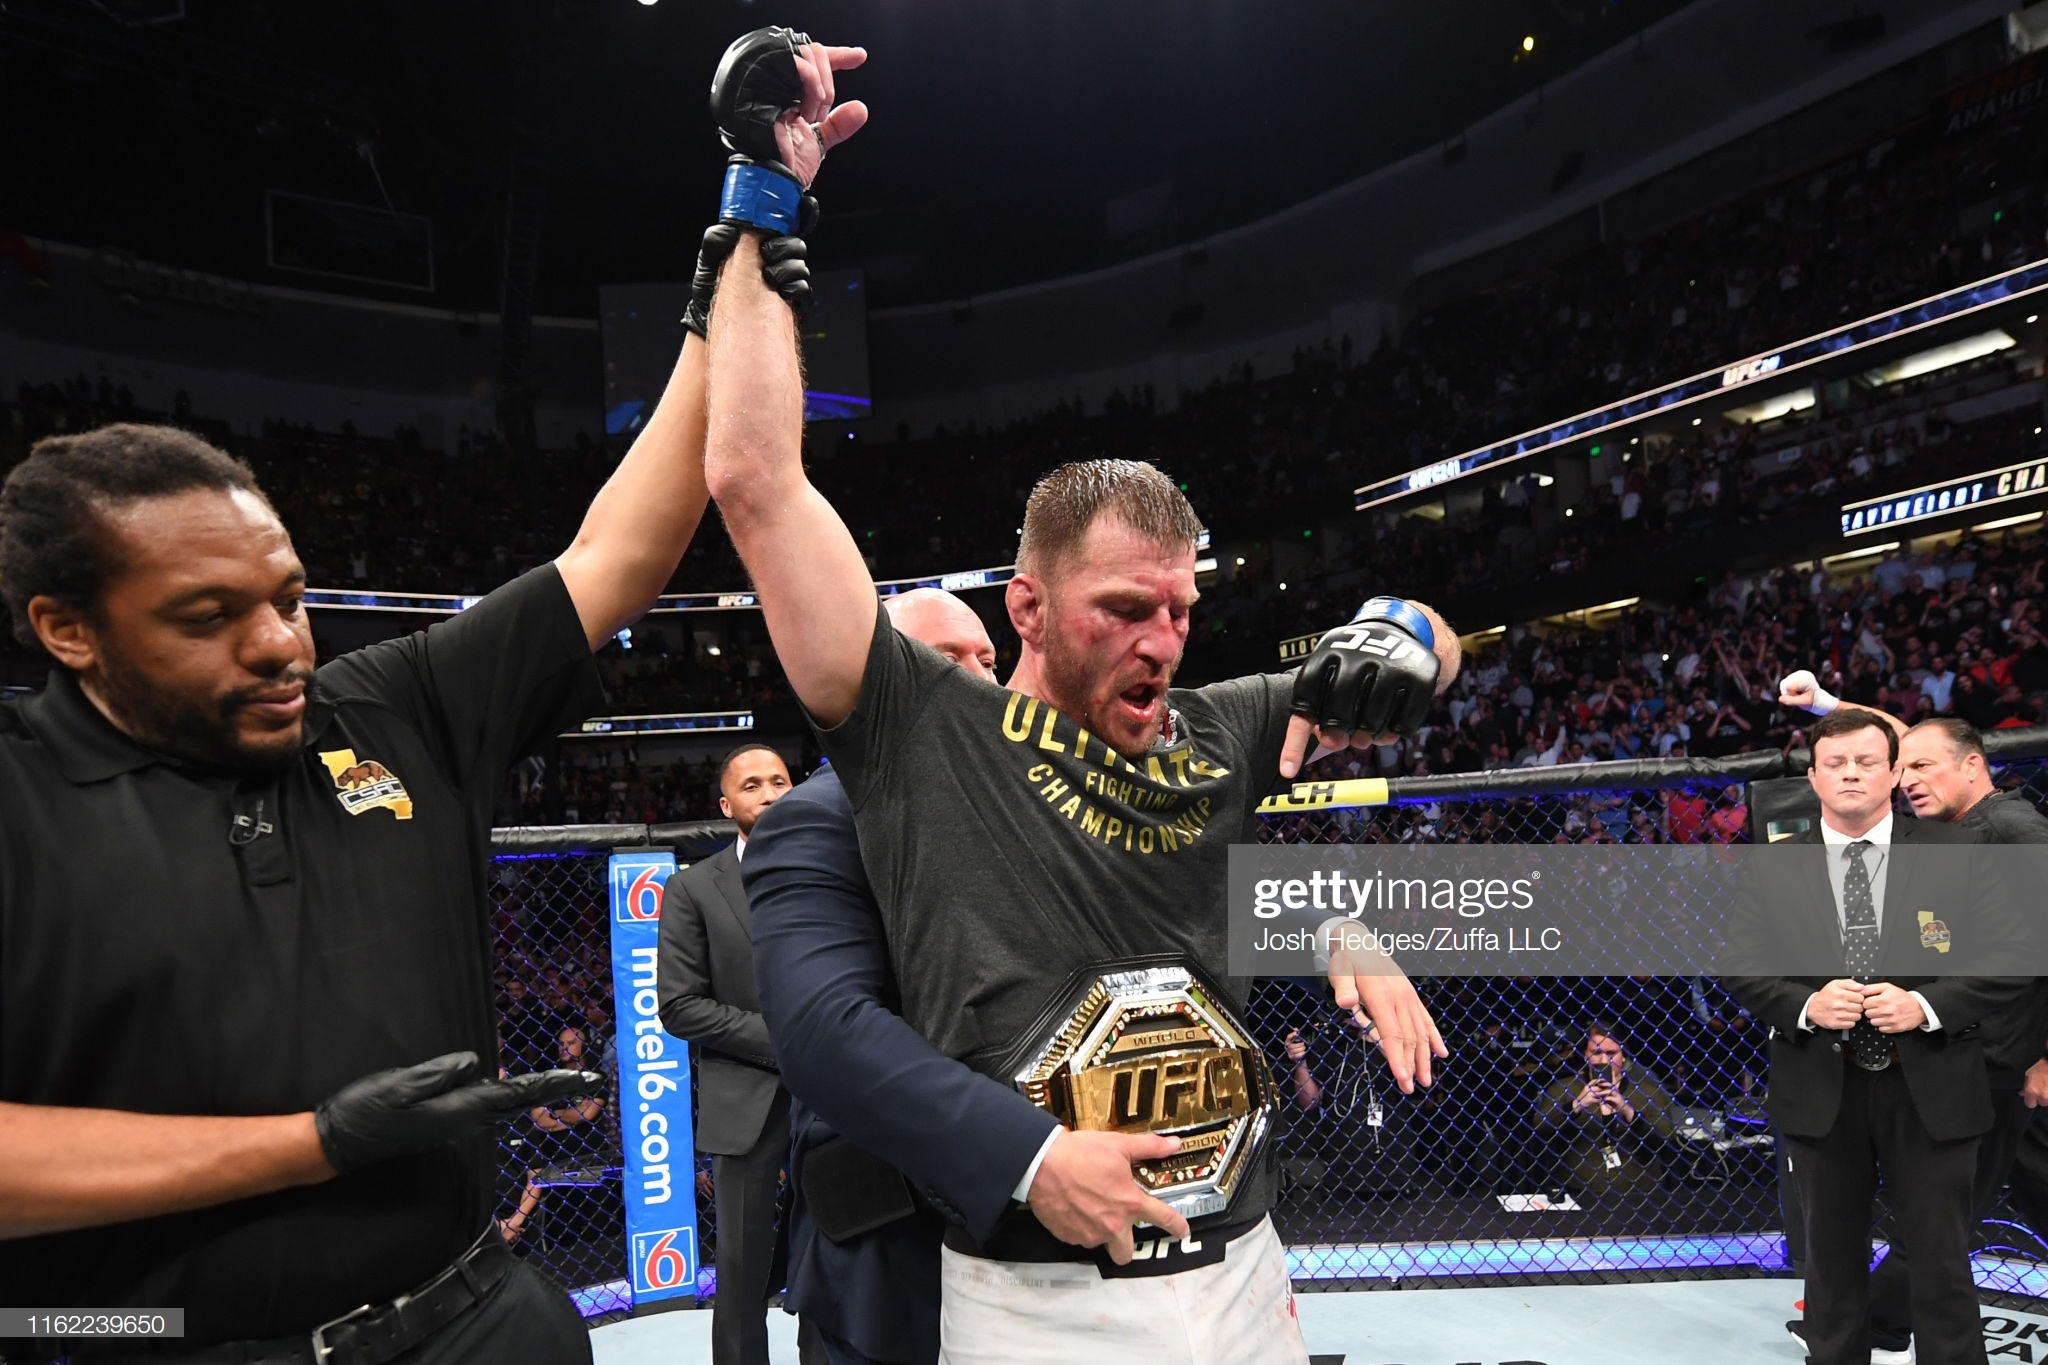 UFC Fighter Stipe Miocic after winning the UFC Heavyweight Championship after defeating Daniel Cormier at UFC 241